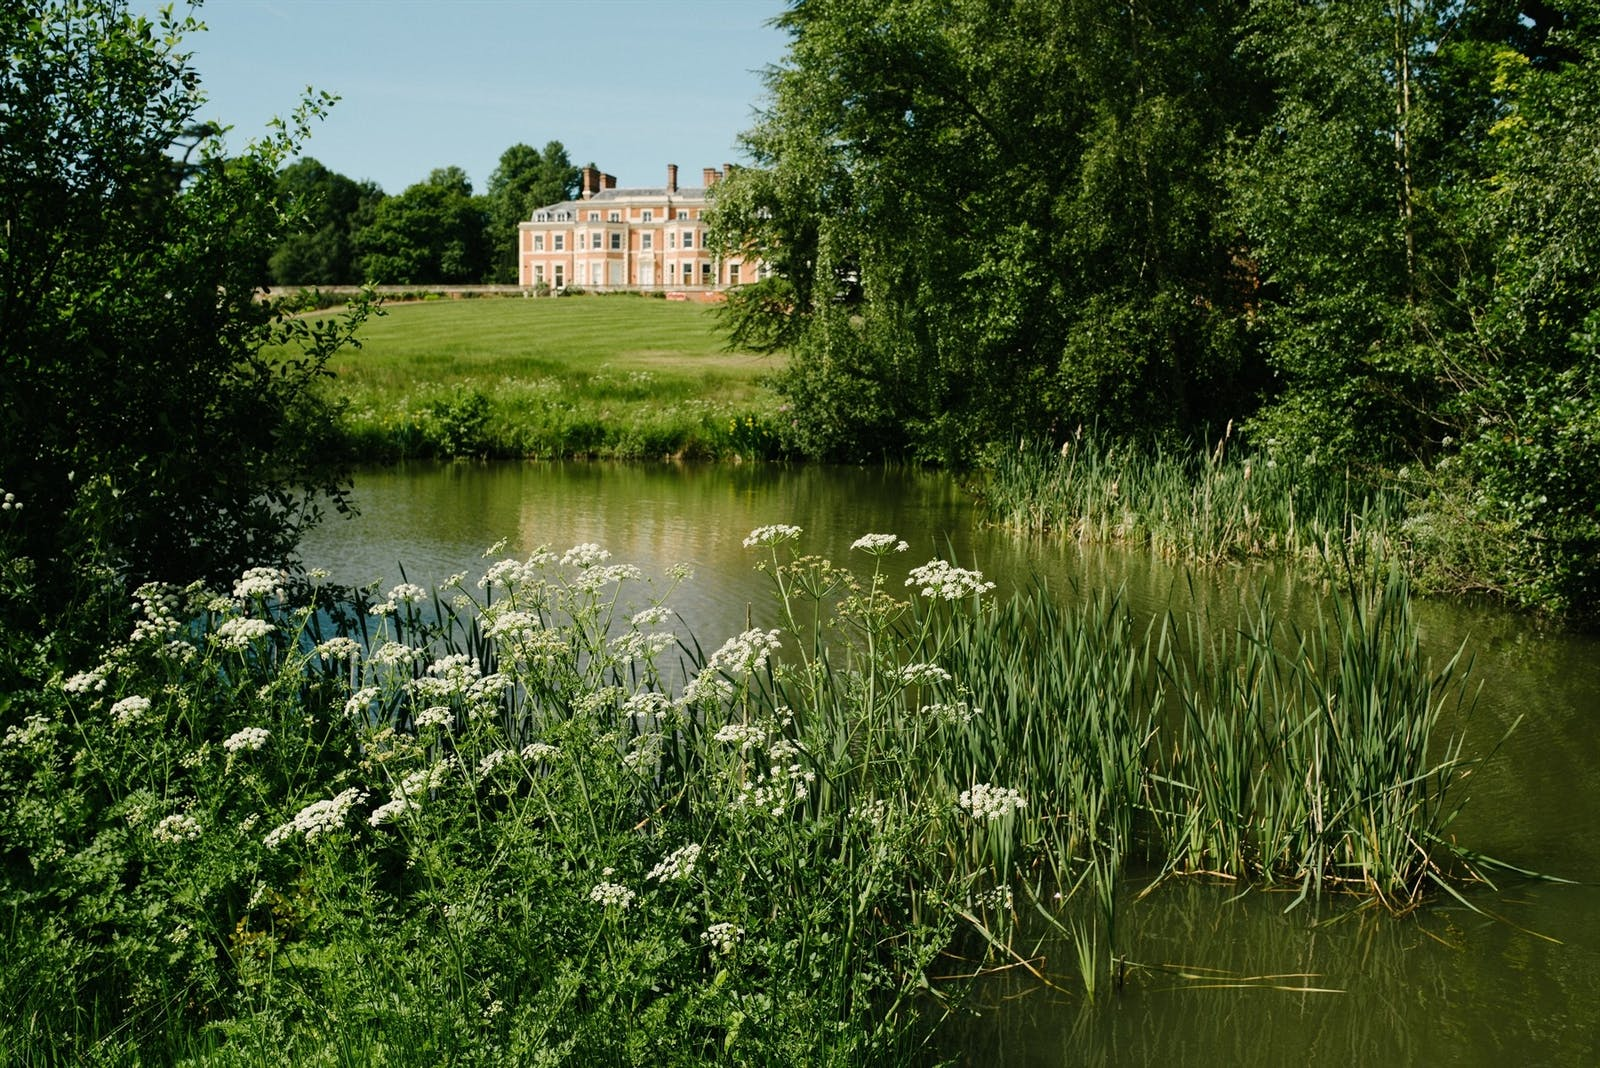 View of Heckfield Place from across the estate's lake